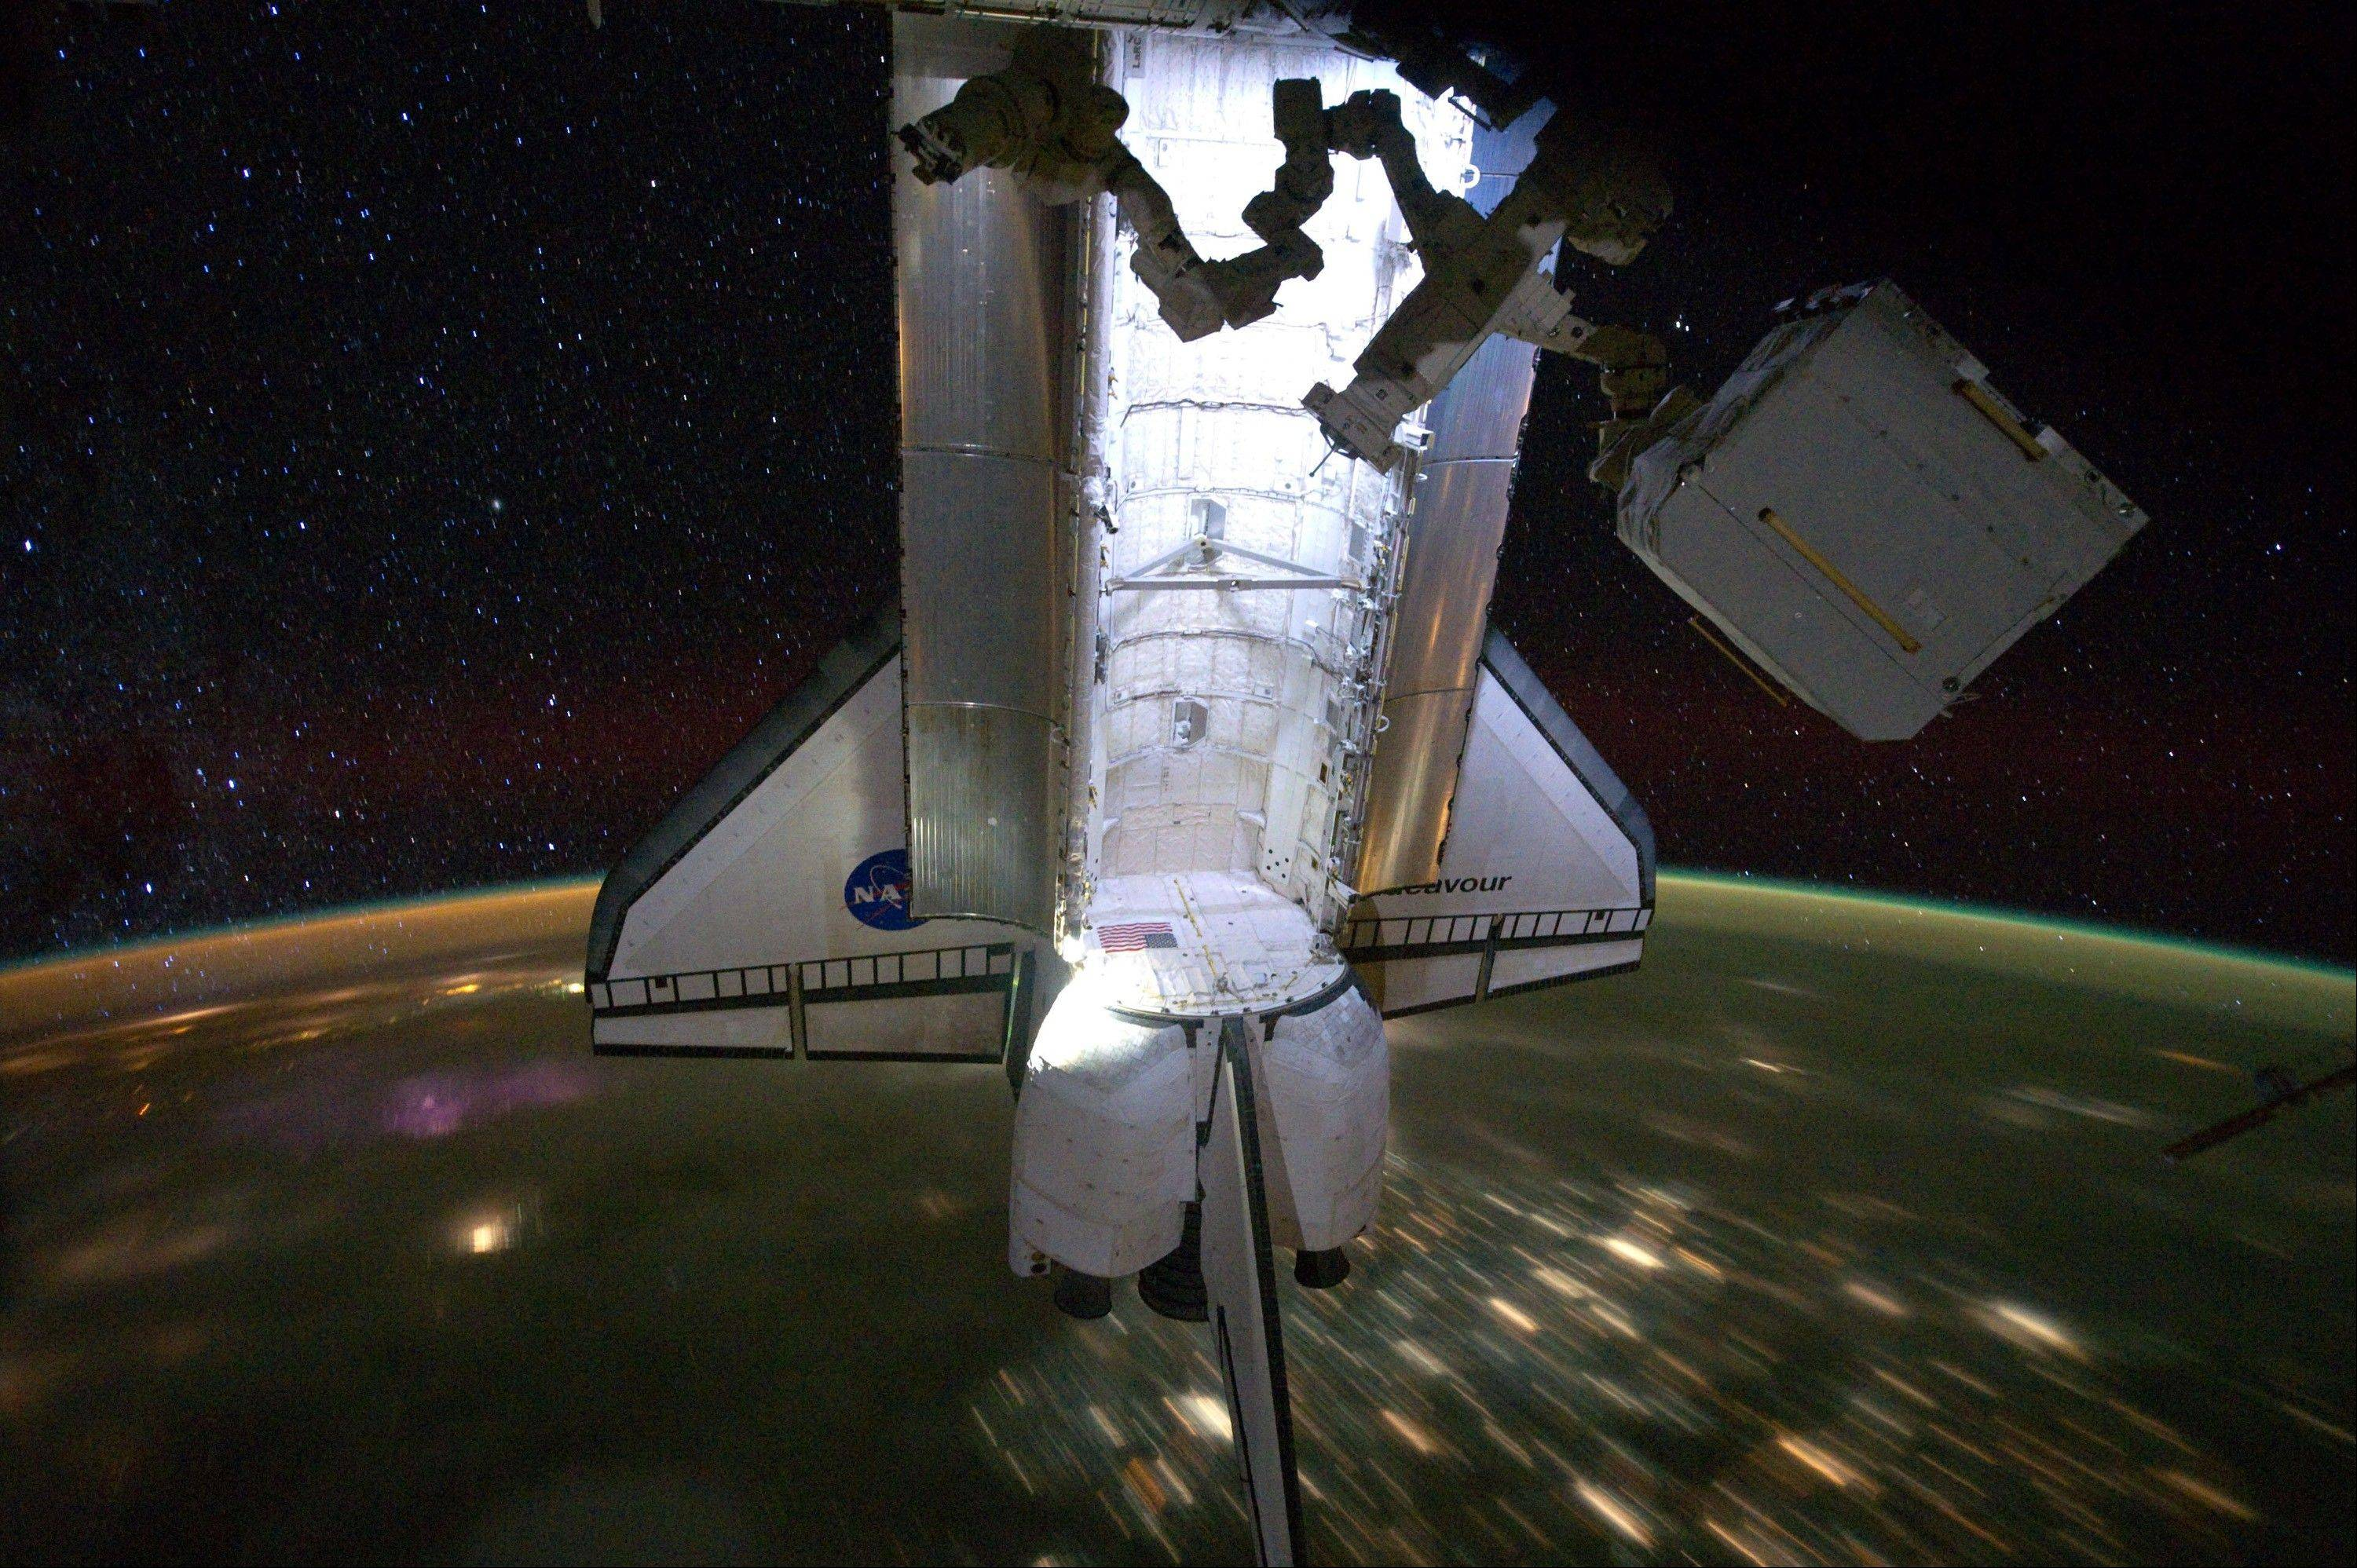 This Saturday, May 28, 2011 photo provided by NASA shows the Endeavour with a nighttime view of the Earth and a starry sky, while docked at the International Space Station during the Endeavour's final mission.